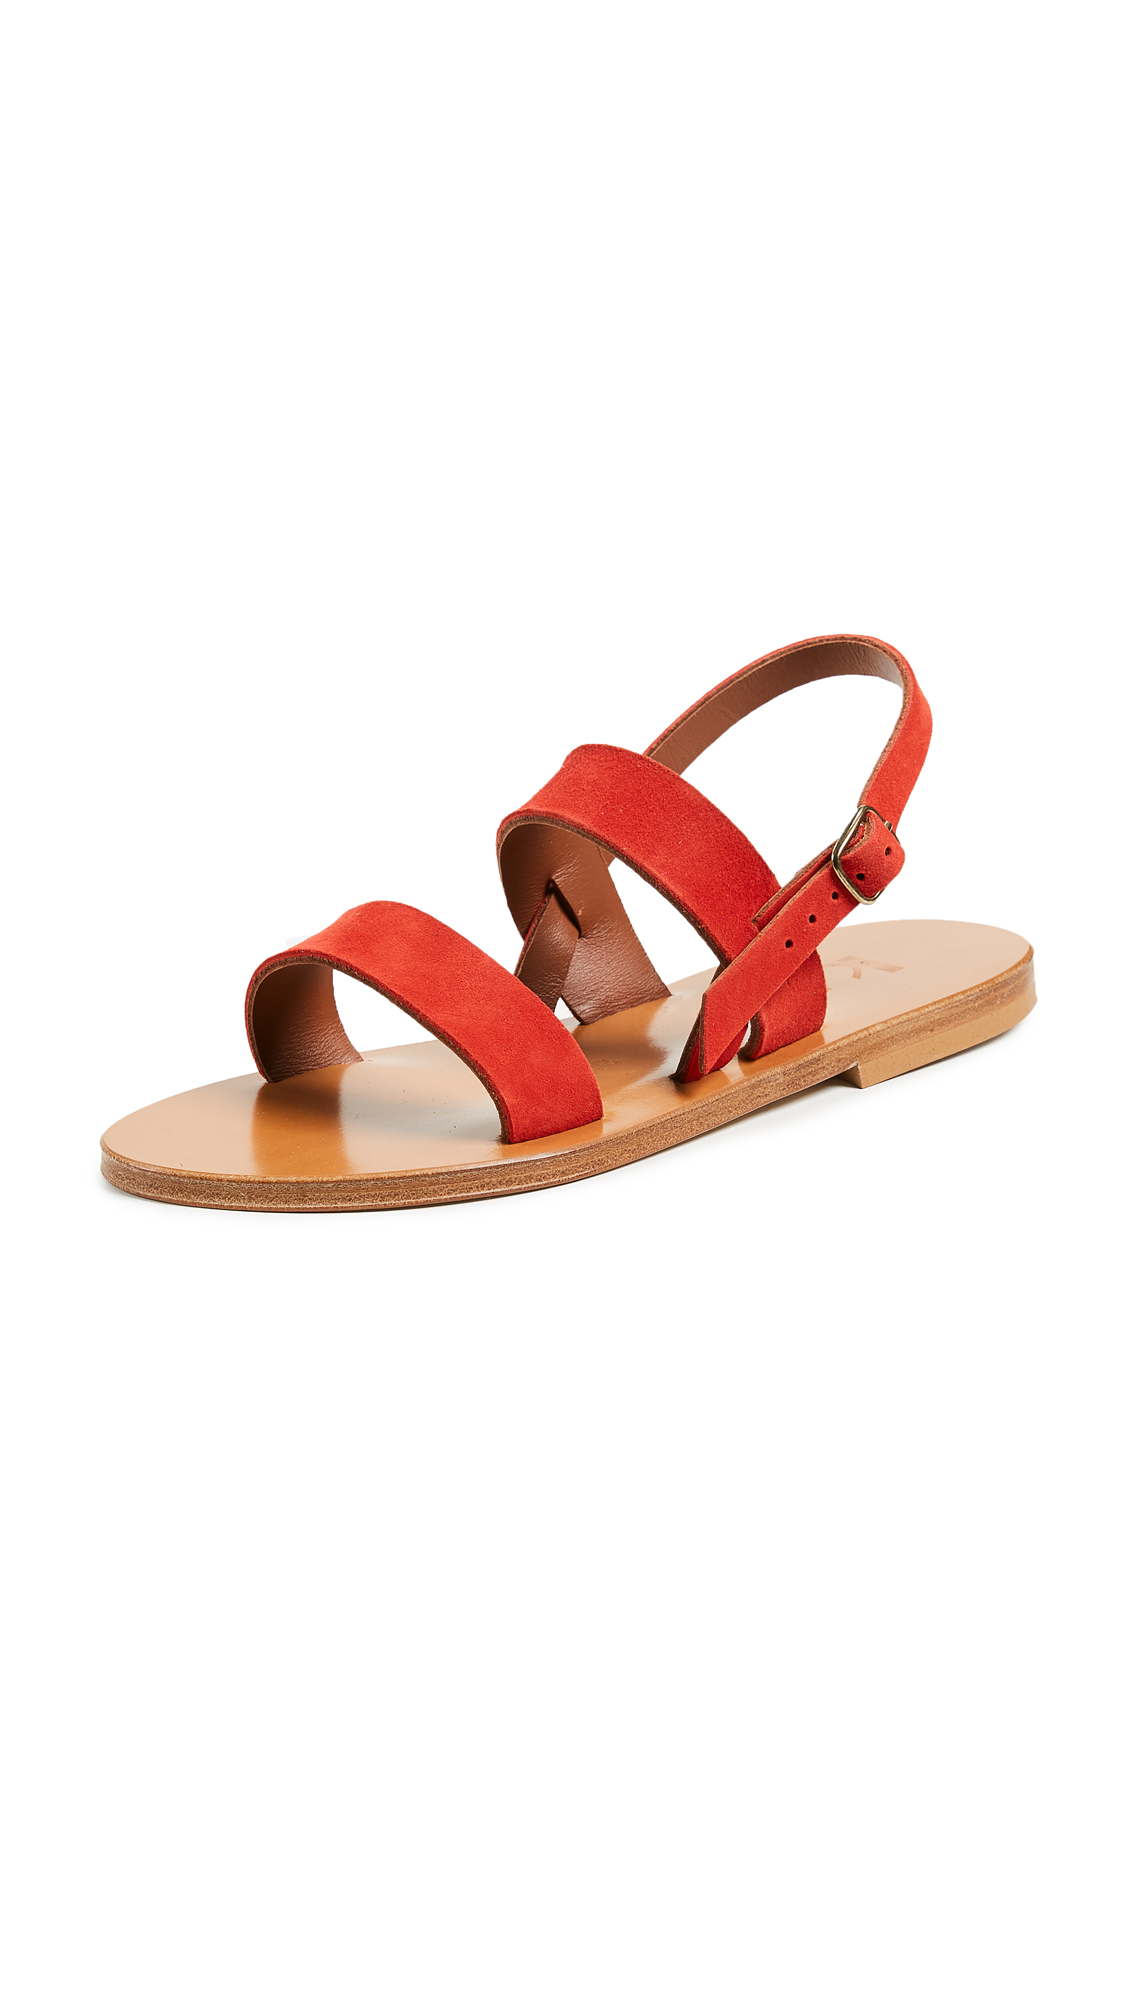 K. Jacques Iroko Sandals - Velours Vermilion